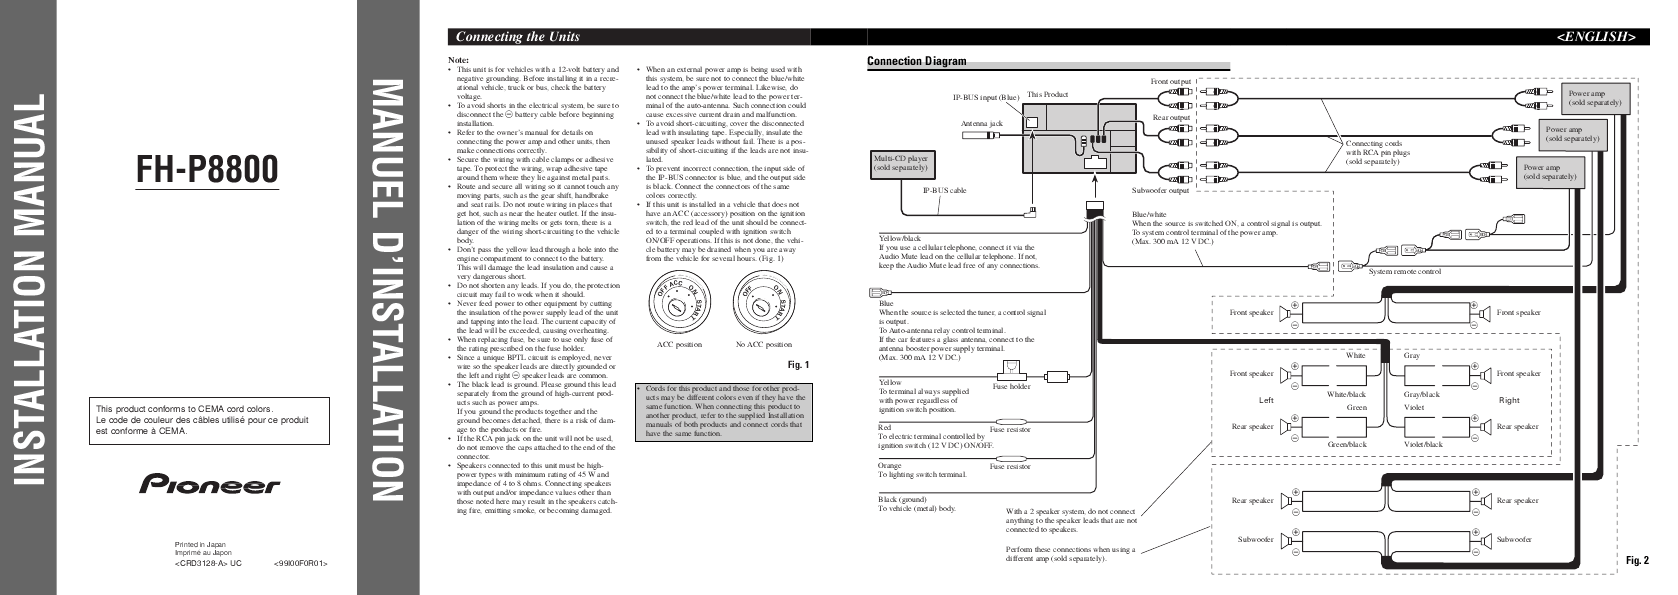 Manual For Pioneer Car Stereo